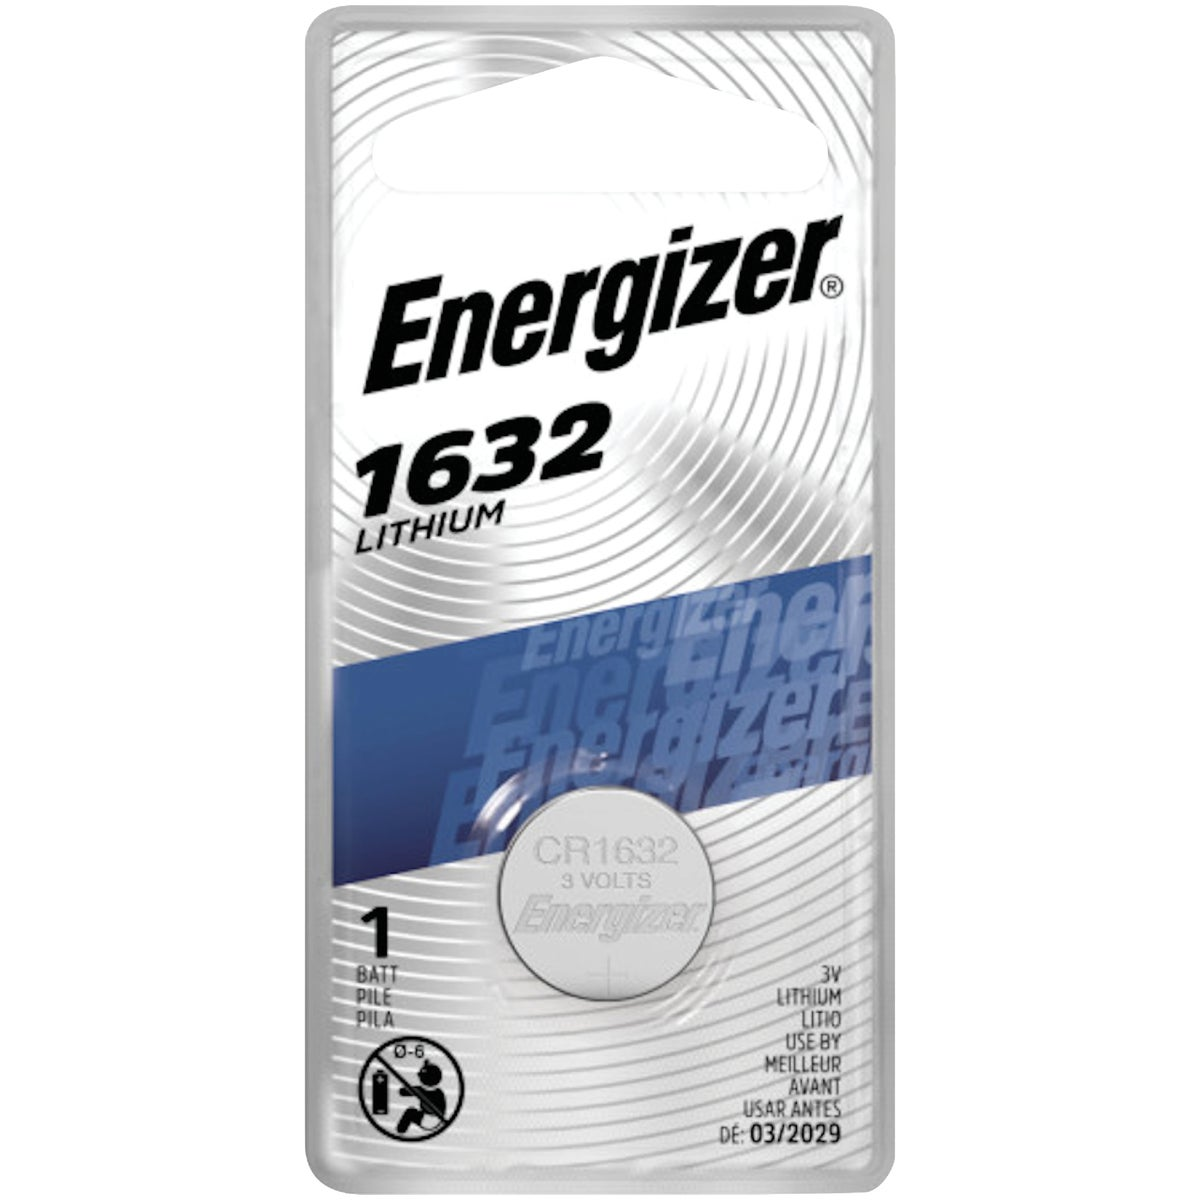 CALCULATOR/WATCH BATTERY - ECR1632 by Energizer